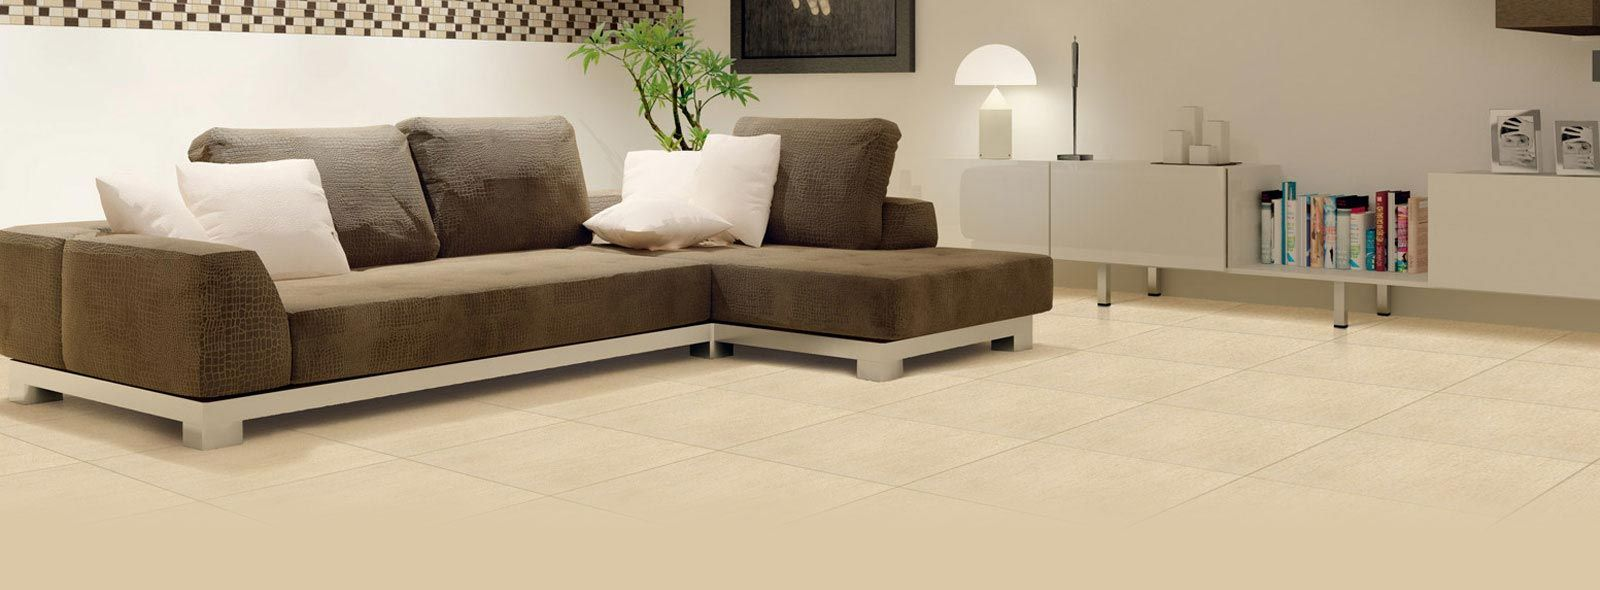 Top Ideas About Tiles Exporter India On Pinterest Ceramics   Floor tiles  design for living room. Living Room Flooring Living Room Tile Ideas And Options  Floor